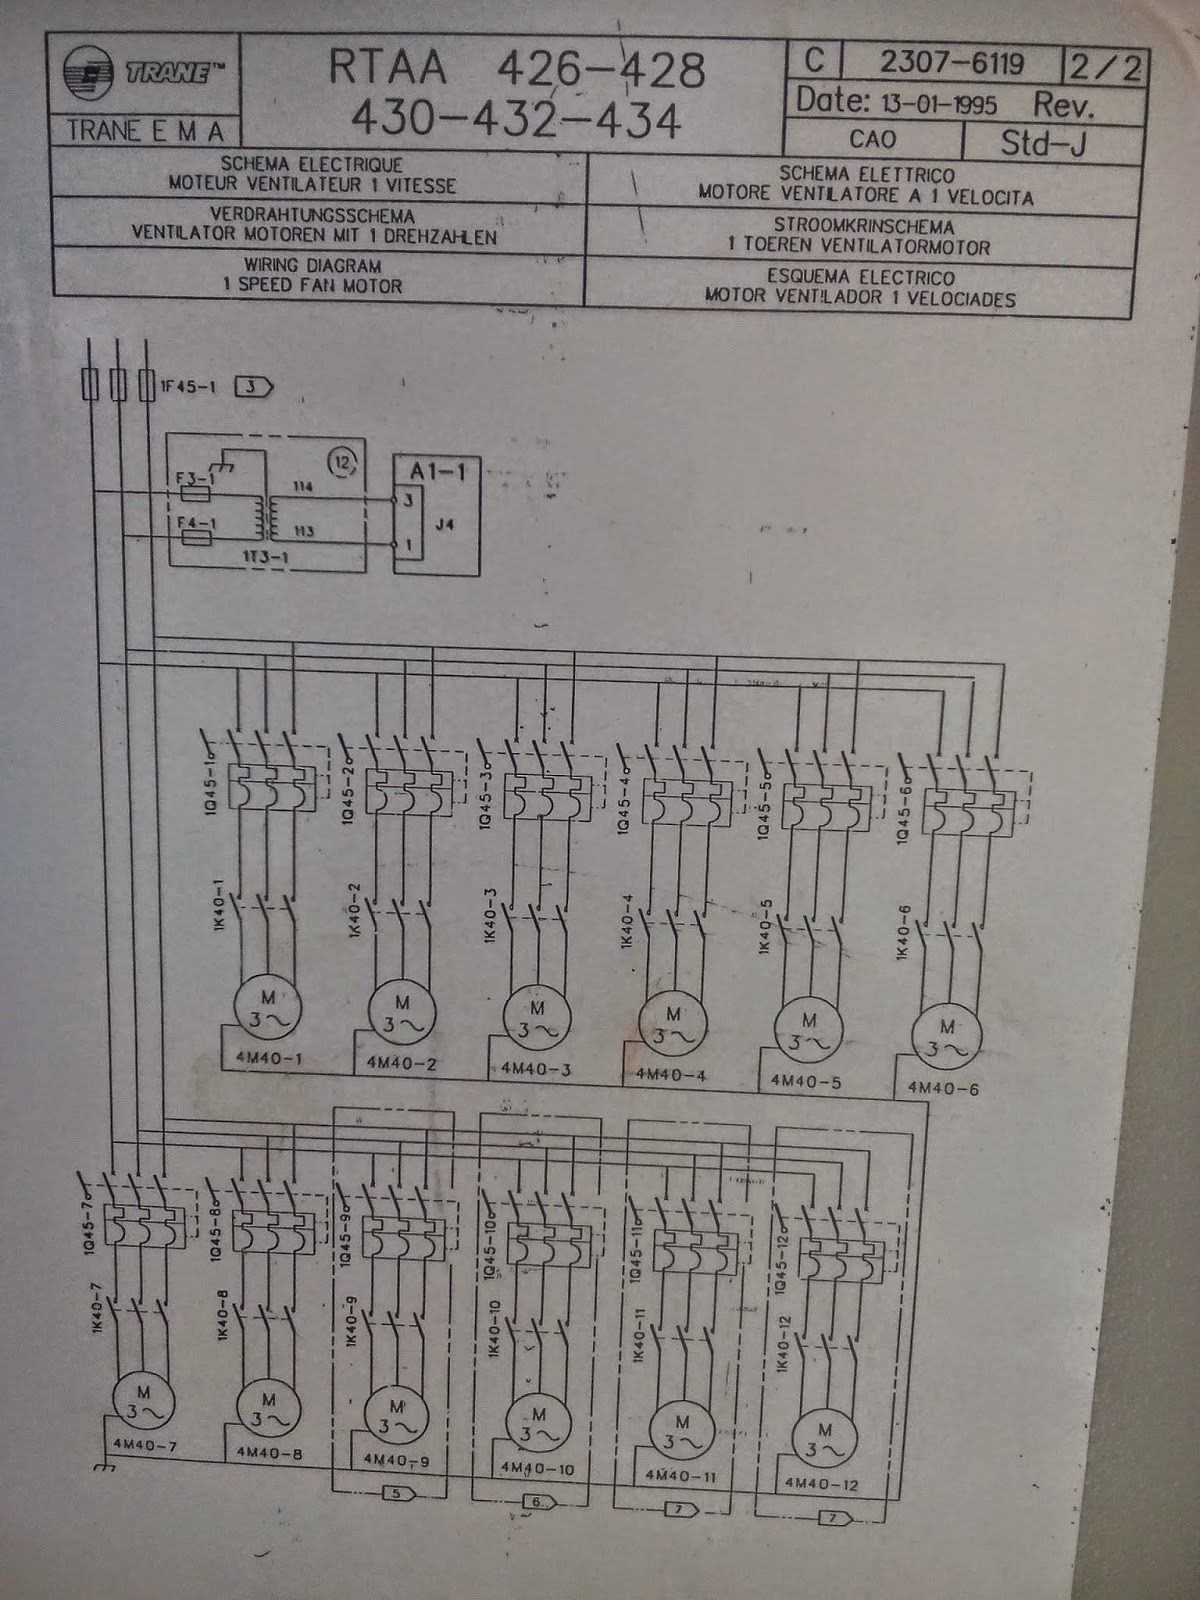 Trane Chiller Wiring Diagram Opinions About Ac Schematics Hvac Chillers Heatpump Air Cooled Control Rtaa Series Diagrams 125chiller